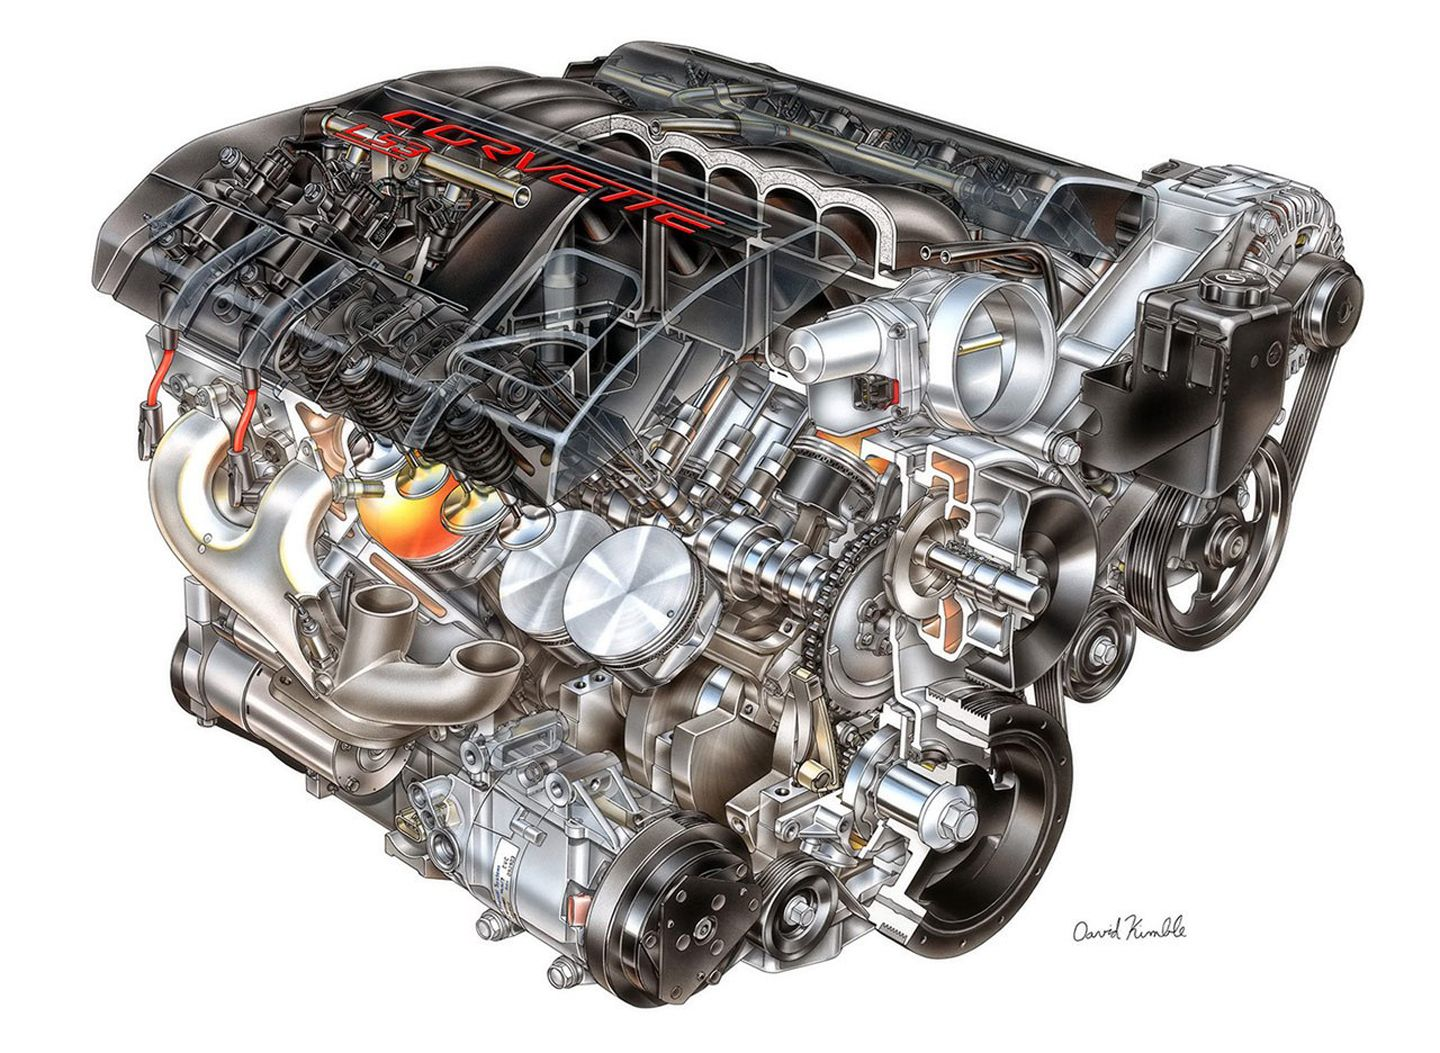 25 best engines images on pinterest engine motor engine and rh pinterest com Chevy Engine Parts Diagram Chevy Malibu Engine Diagram